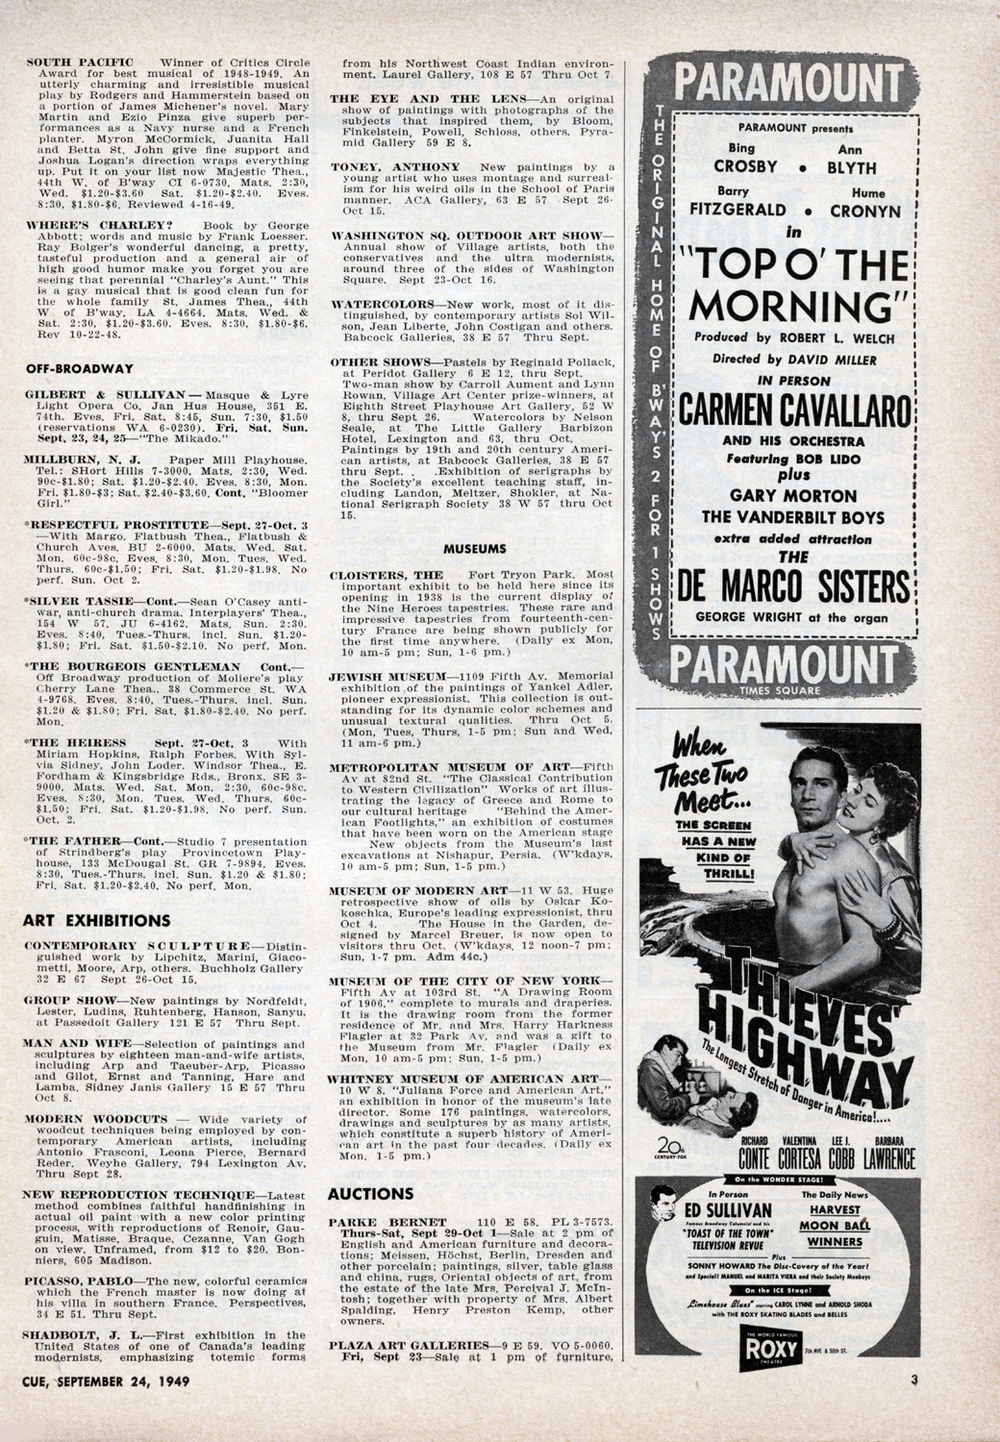 September 24, 1949 Pg. 3 INSIDE  CUE : Theatre, Movie Listings, Art Exhibitions, Museums, Auctions